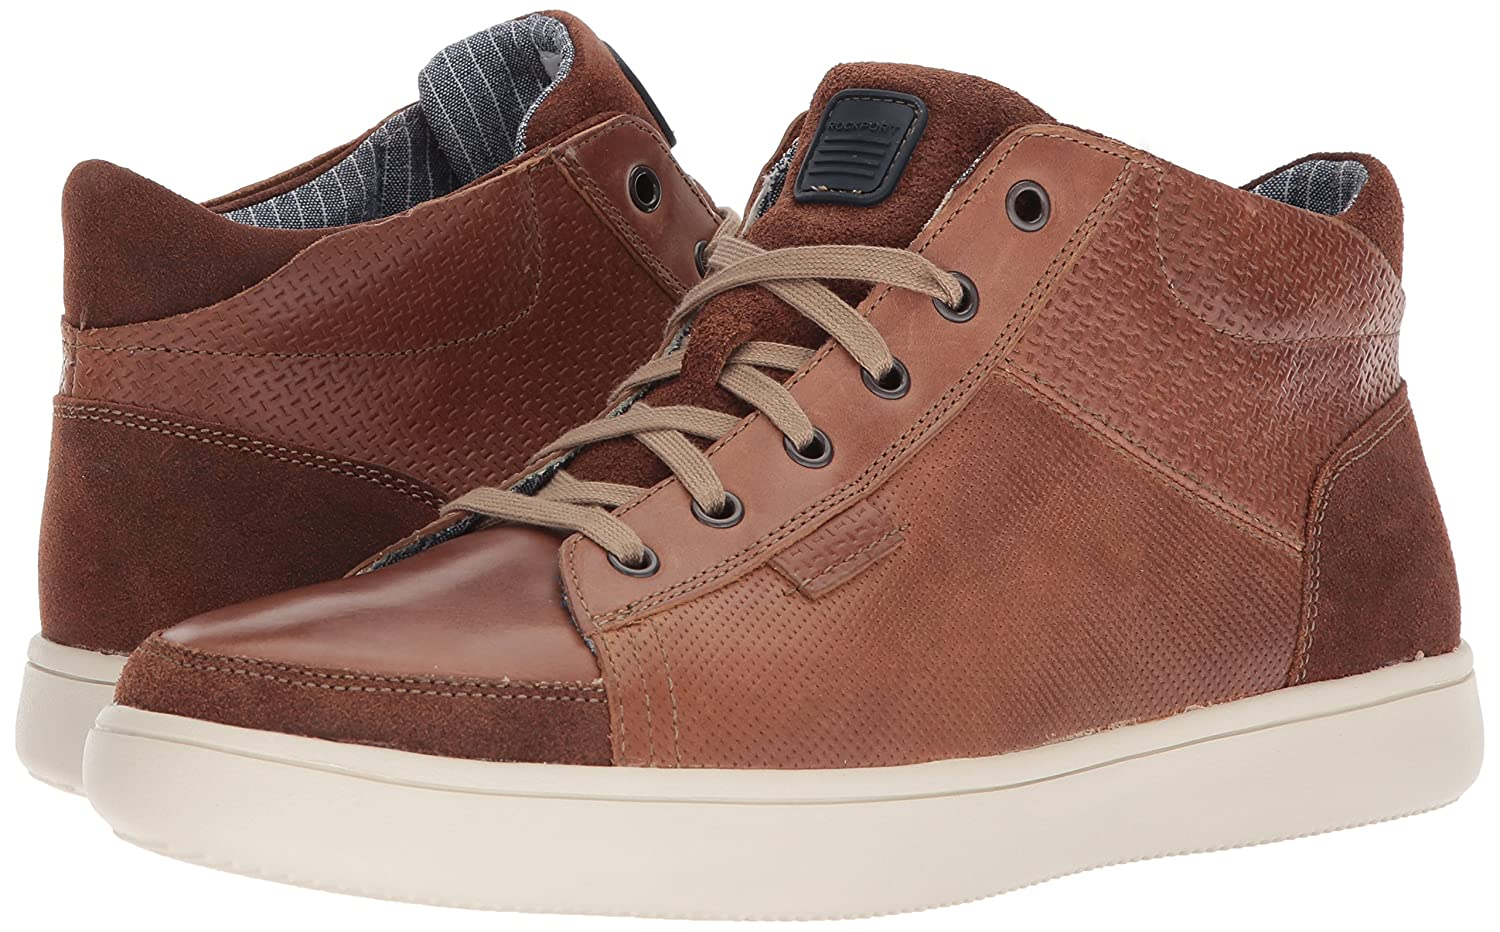 5eb58761cfc Tan Tan Tan Rockport Men's Colle Lace to Toe Boot Ankle 774417 ...